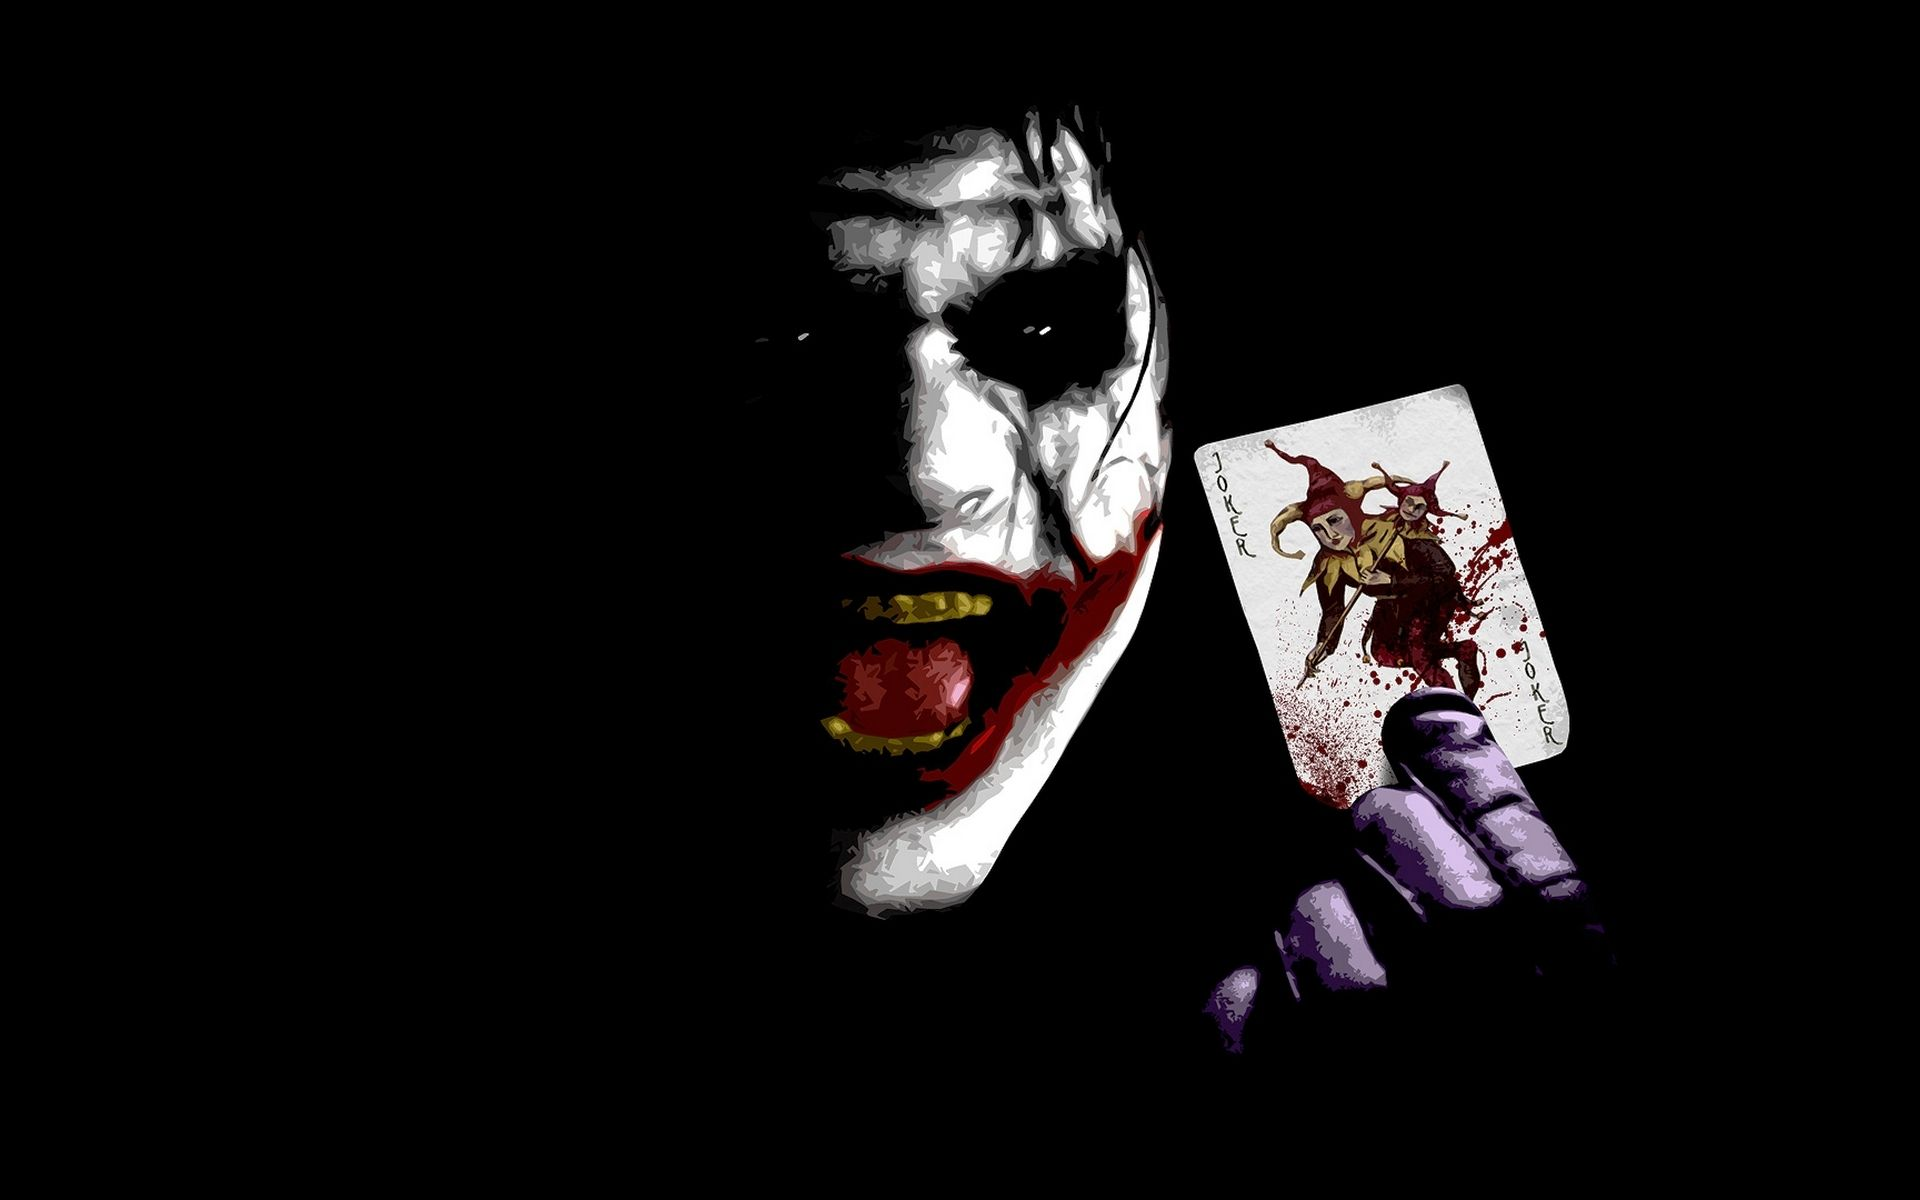 Collection of Batman Dark Knight Joker Wallpaper on HDWallpapers